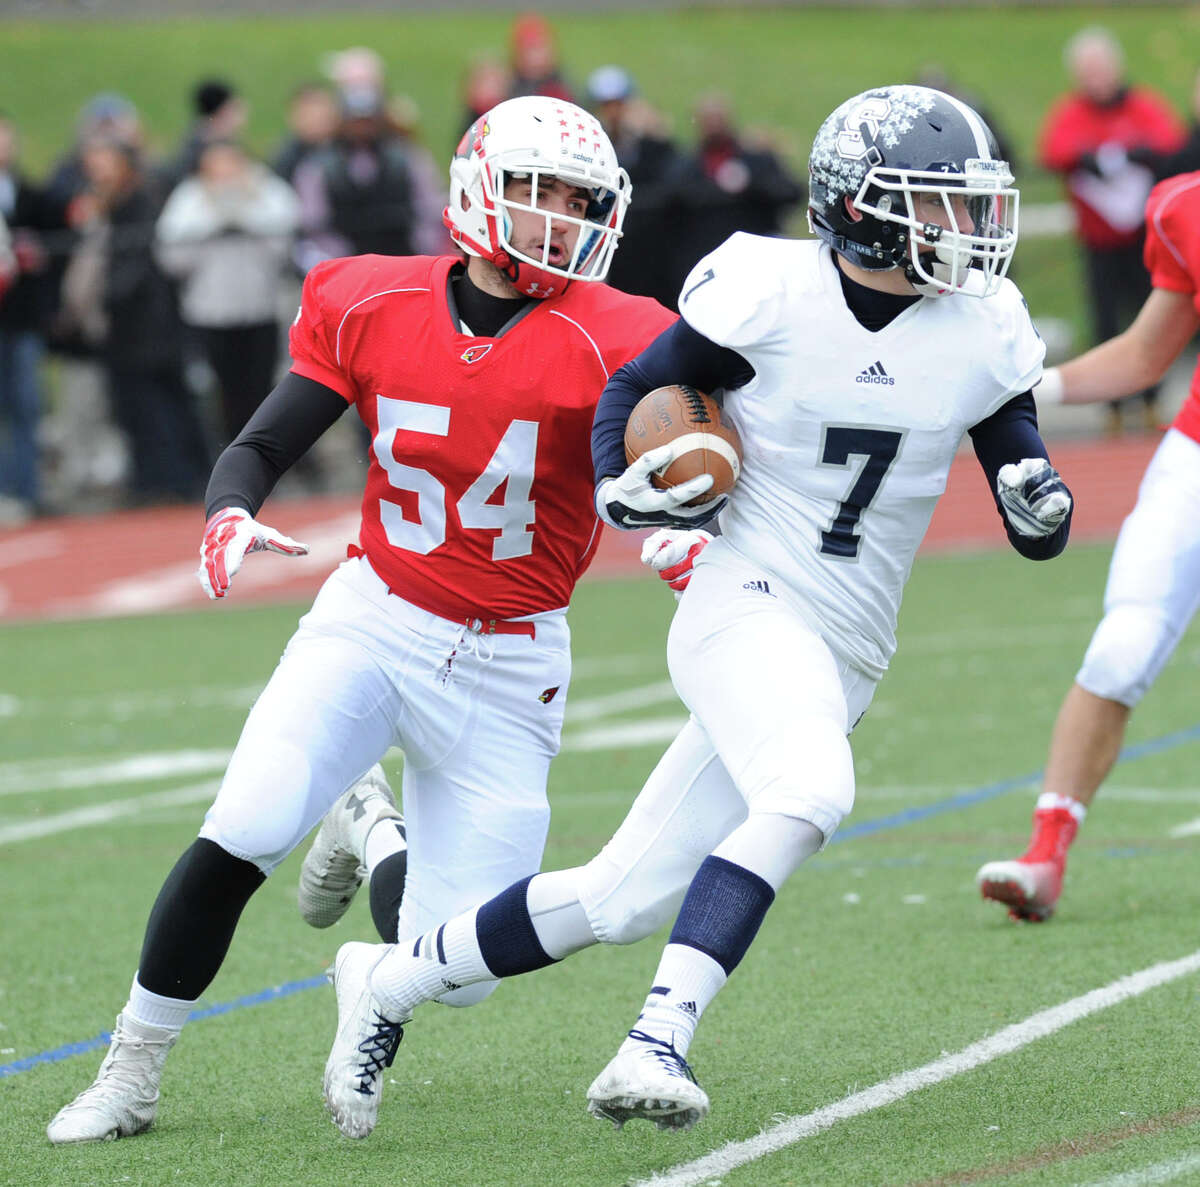 FCIACWhen: 10 a.m. Thursday The Skinny: John Marinelli's first season along the Greenwich sidelines comes to a close against a Staples team that's hoping to overcome a rash of injuries and get back to the postseason. Star running back Ethan Burger - who ran for 1,260 yards and 11 touchdowns as a sophomore - has been limited to 74 carries this year because of hamstring and knee injuries.